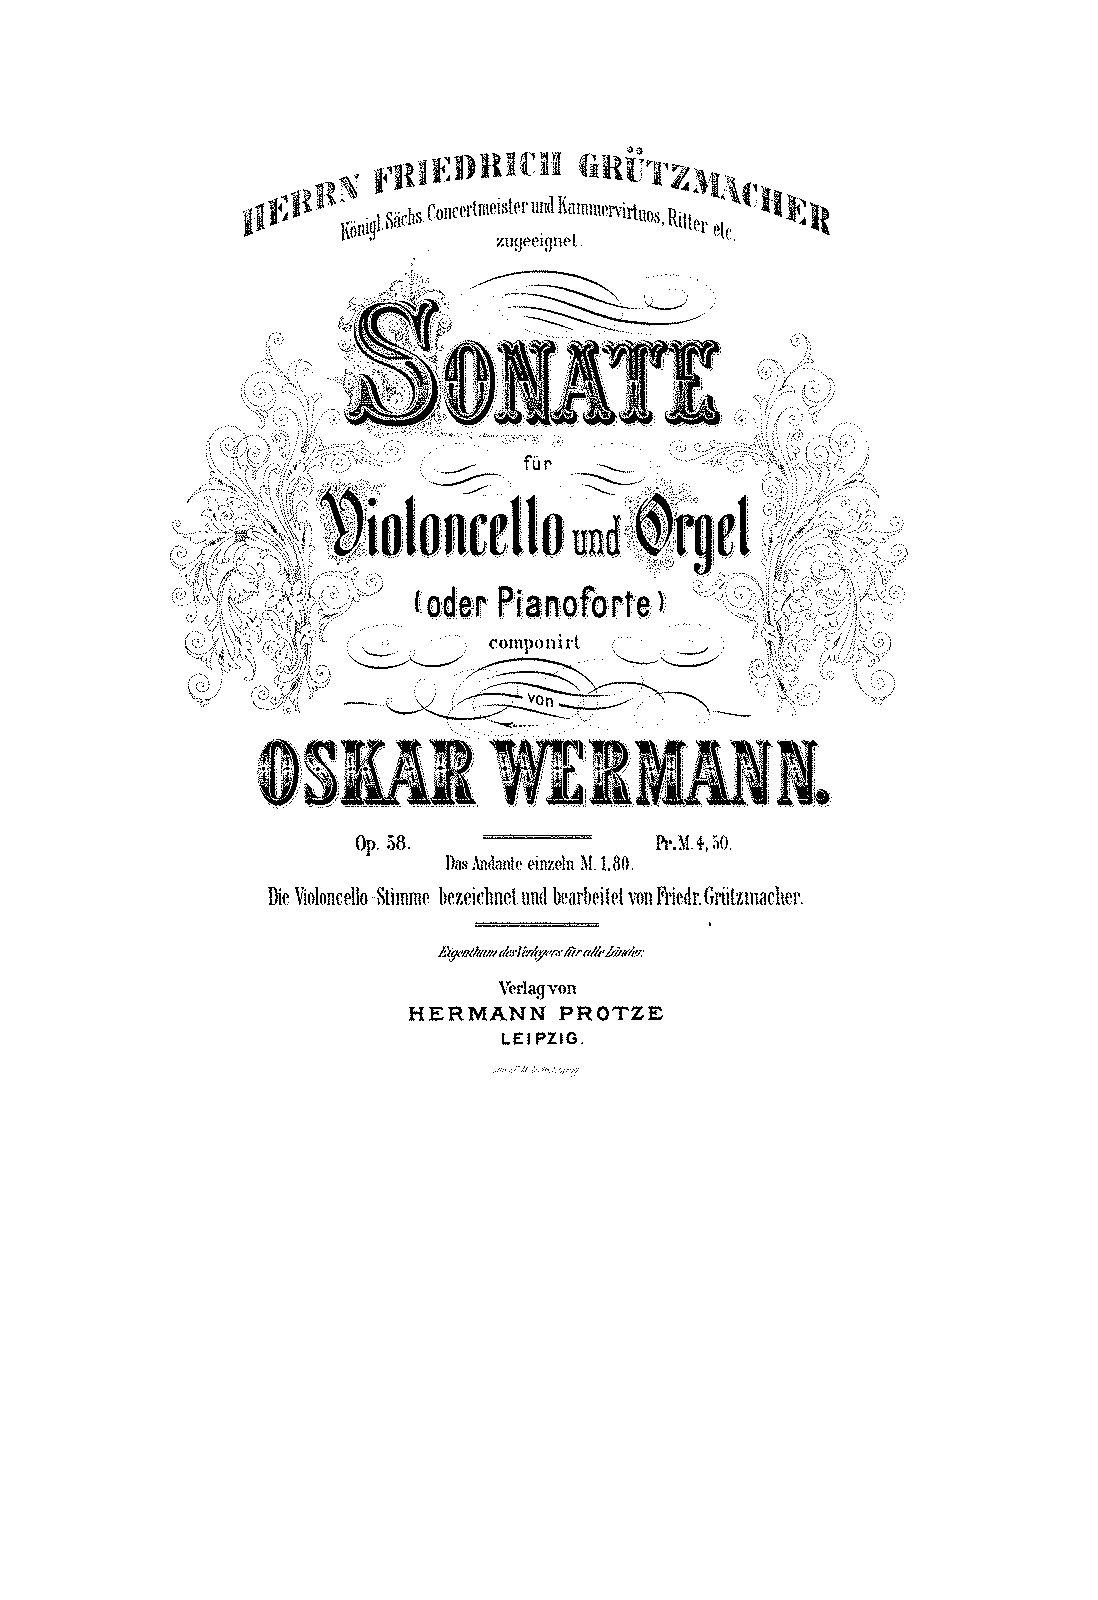 PMLP101367-Wermann - Sonate for Cello and Organ (or Piano) Op58 organ.pdf